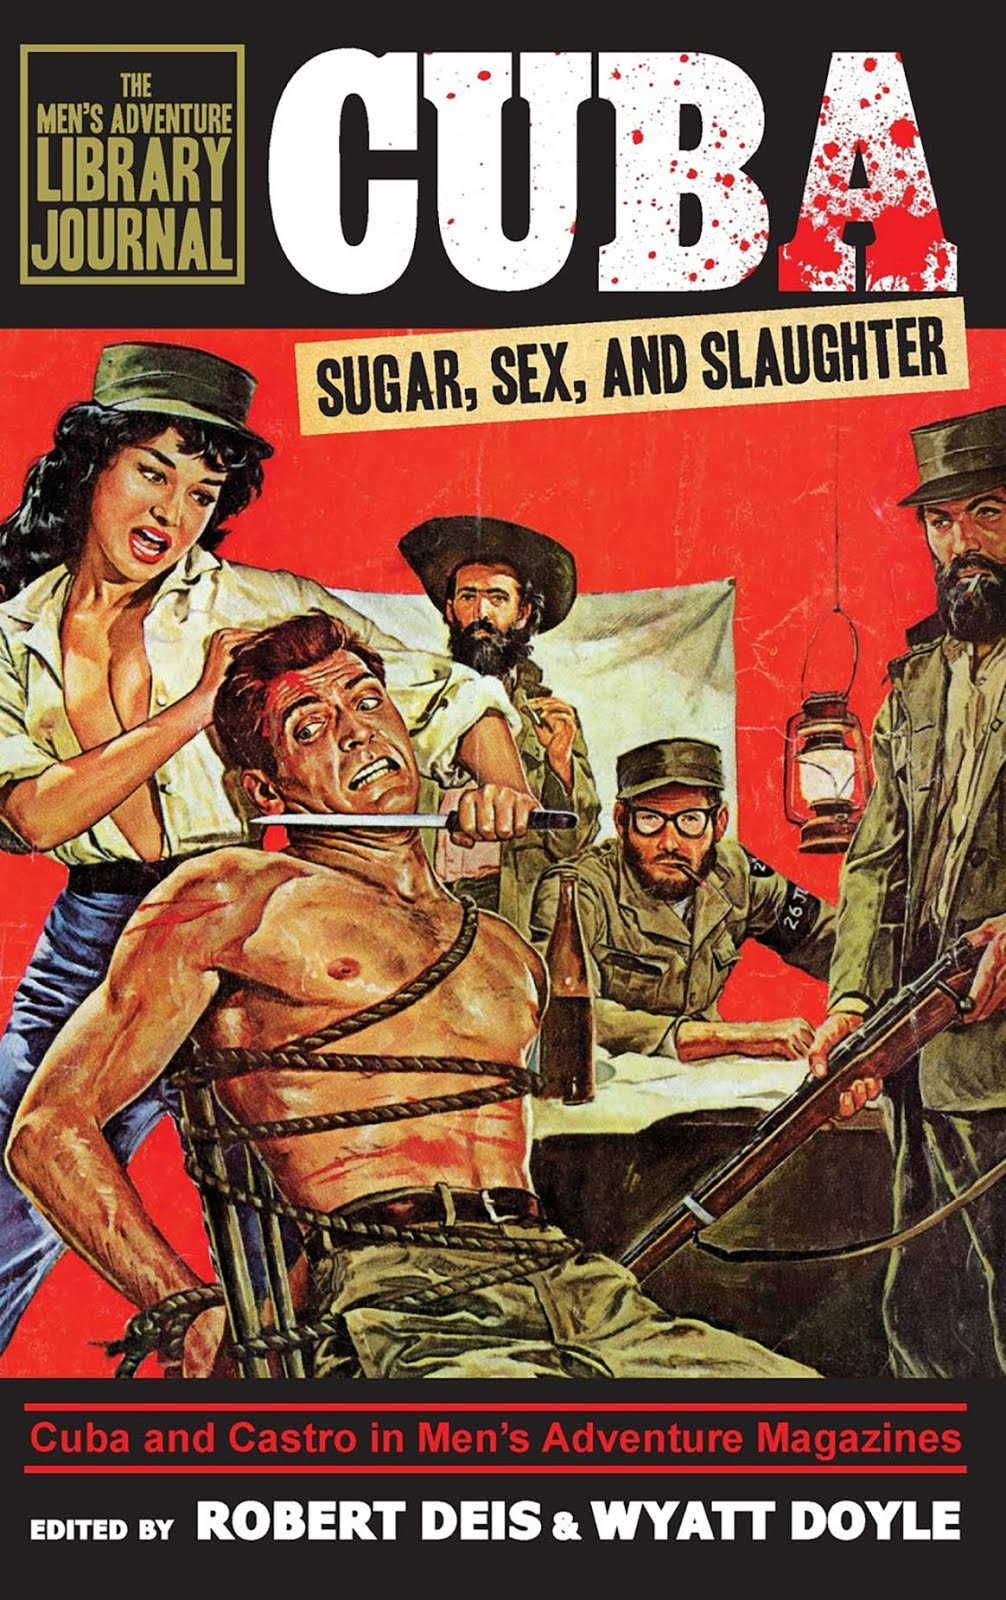 CUBA: SUGAR, SEX, AND SLAUGHTER